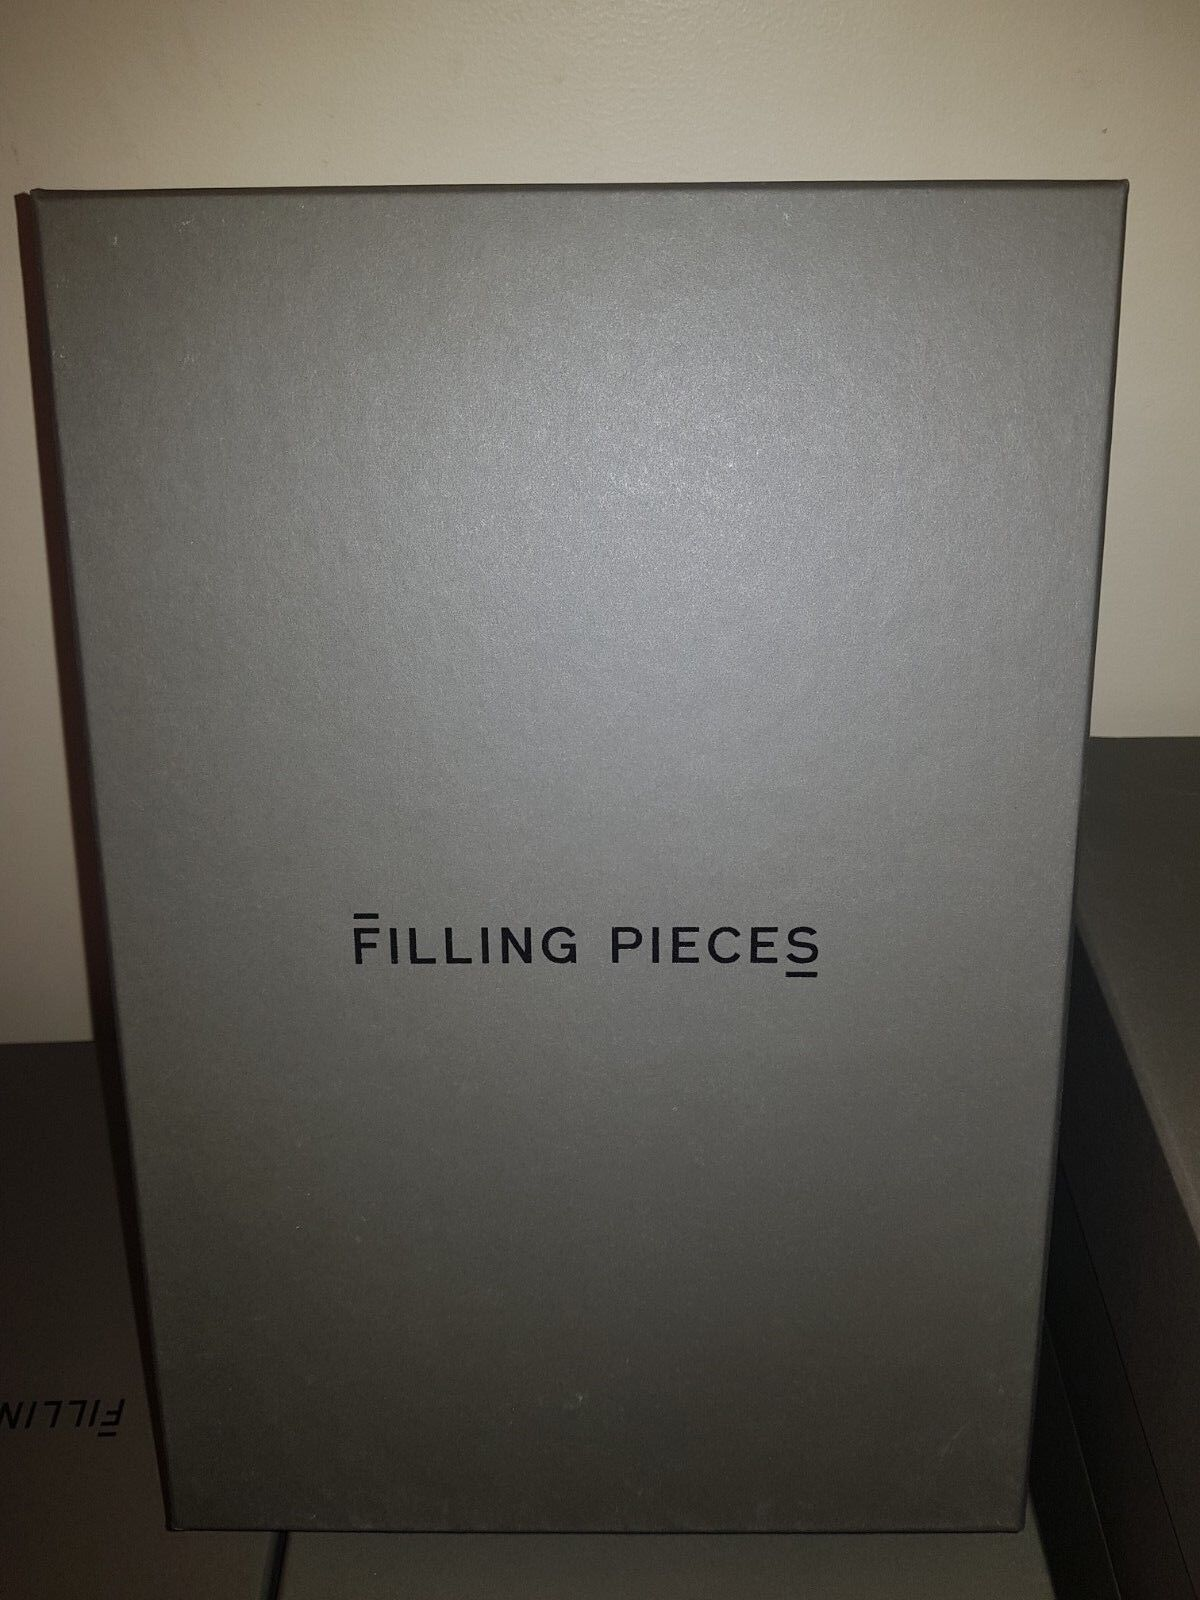 FILLING PIECES Steel Runner Donna Donna Donna sneaker FP 39 US 8.5 EU 40 (rrp:) a6f53f